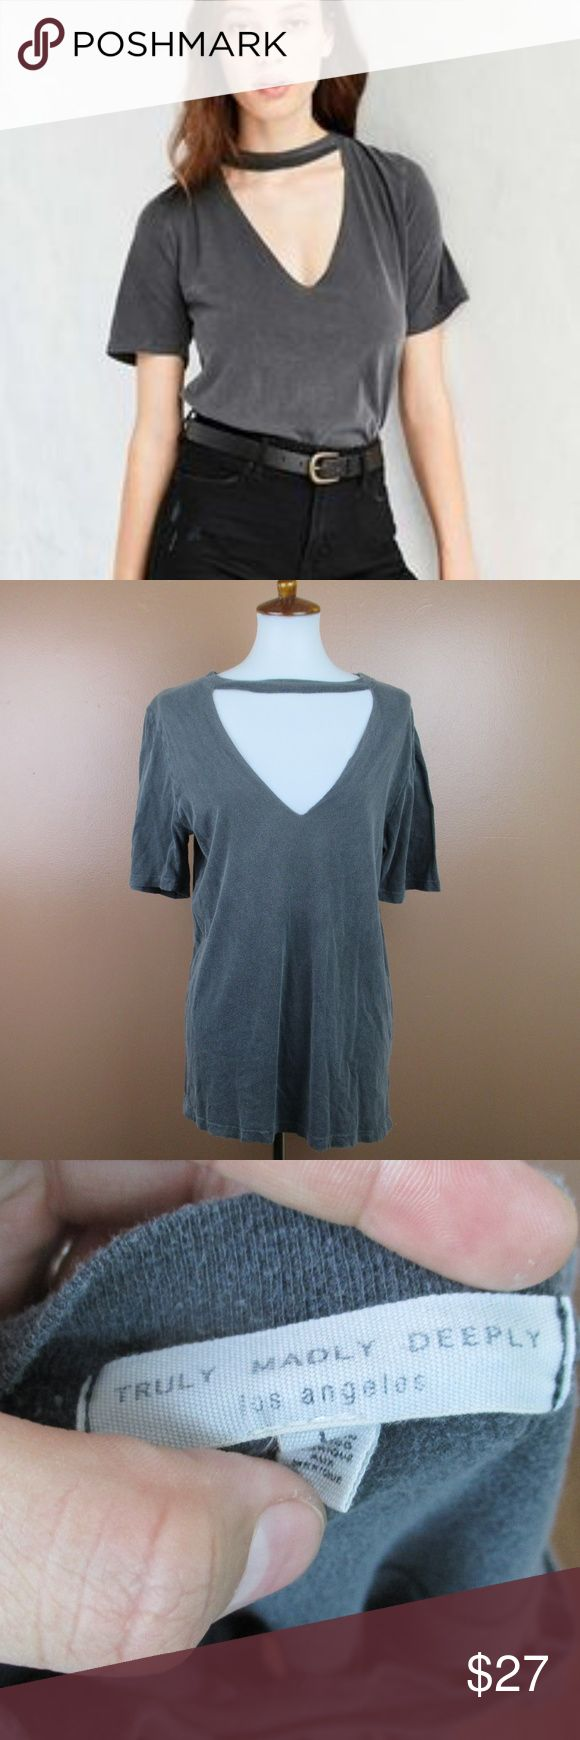 Urban Outfitters Truly Madly Deeply Large V neck Urban Outfitters Truly Madly Deeply V neck Cut out choker Tee Distressed gray Size Large Preowned but in excellent condition Stretchy  Add to a bundle for an automatic discount  Colors may very due to lighting, seller does its best to portray the right color. Please inspect all photos.  #K074 Urban Outfitters Tops Tees - Short Sleeve